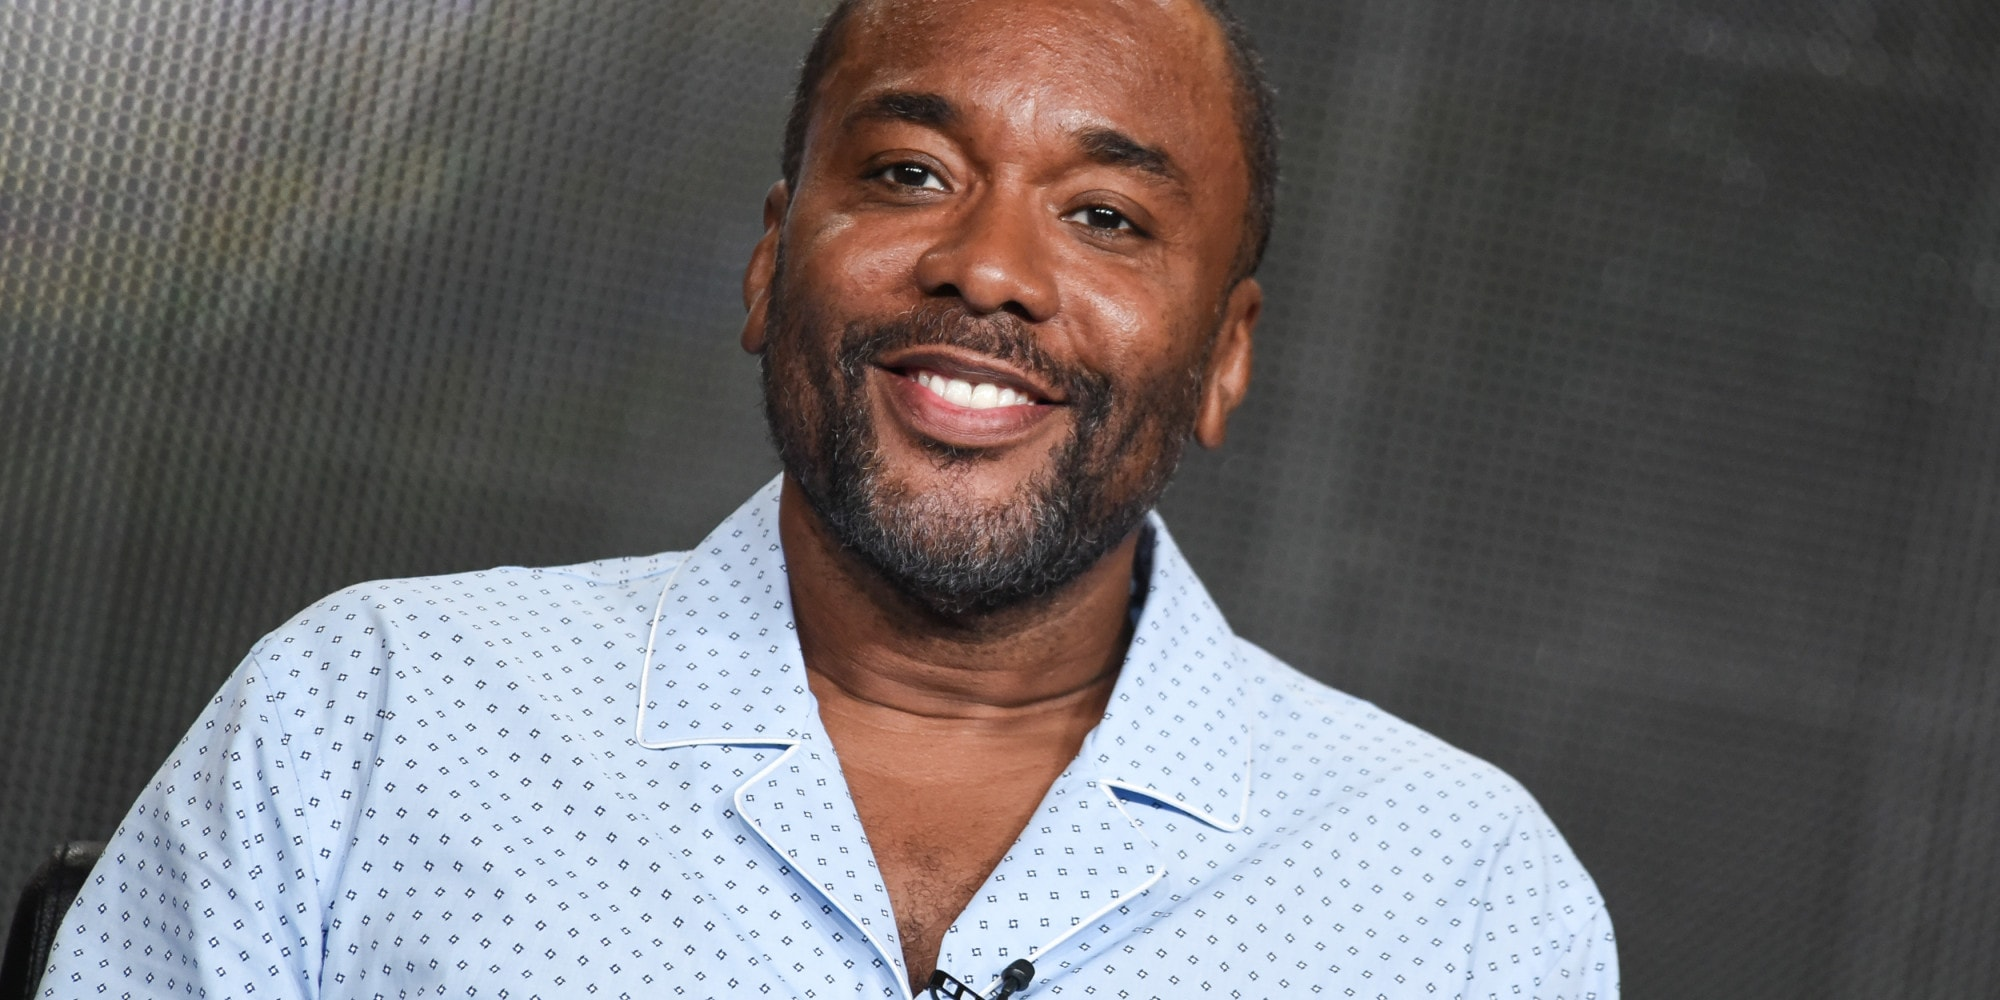 Lee Daniels Background